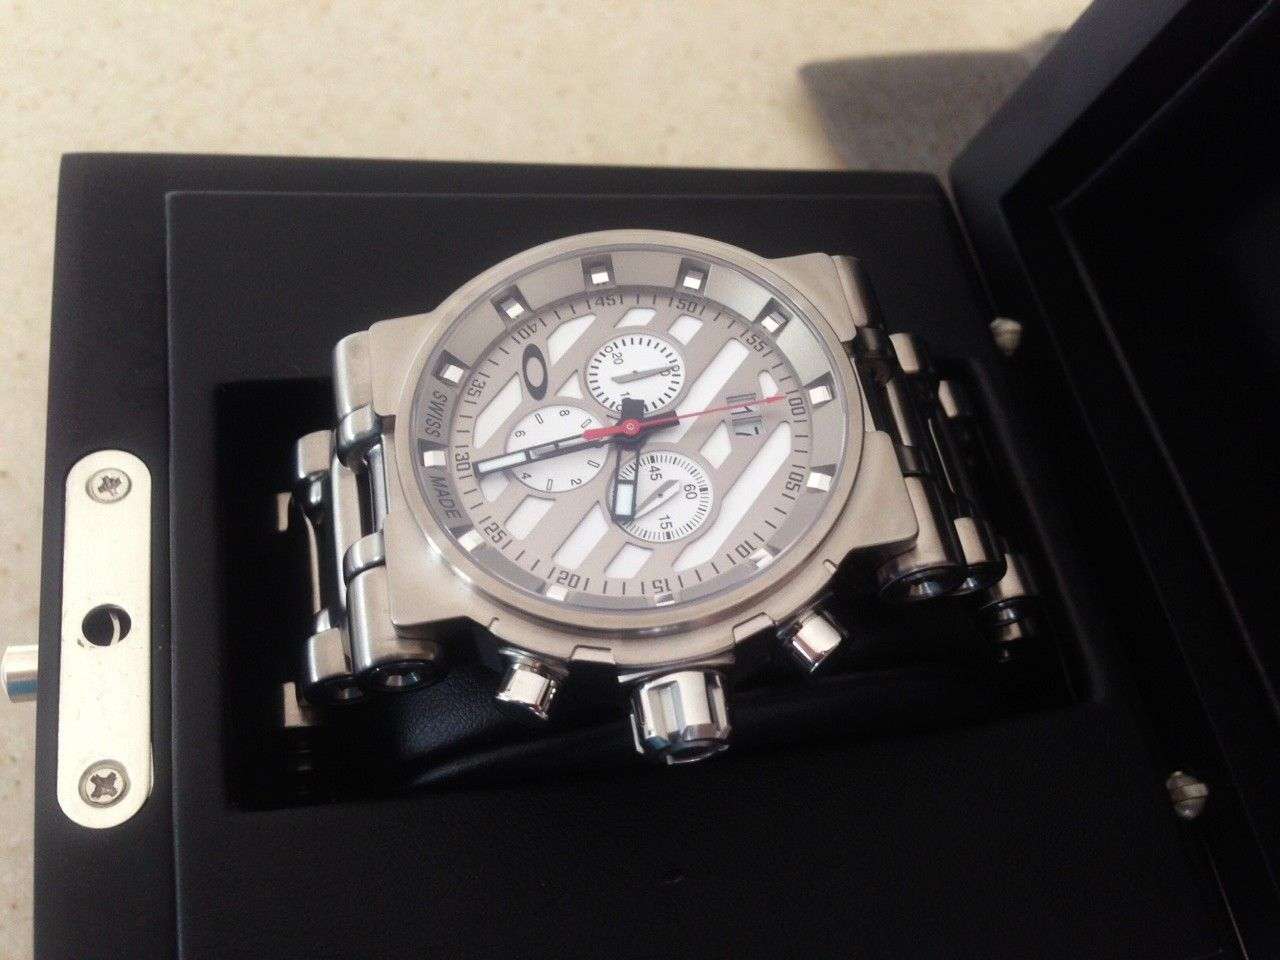 NEW IN BOX Hollow Point Titanium Watch White Dial 10-046 REDUCE PRICE 1,250 or Best Offer - 9.JPG